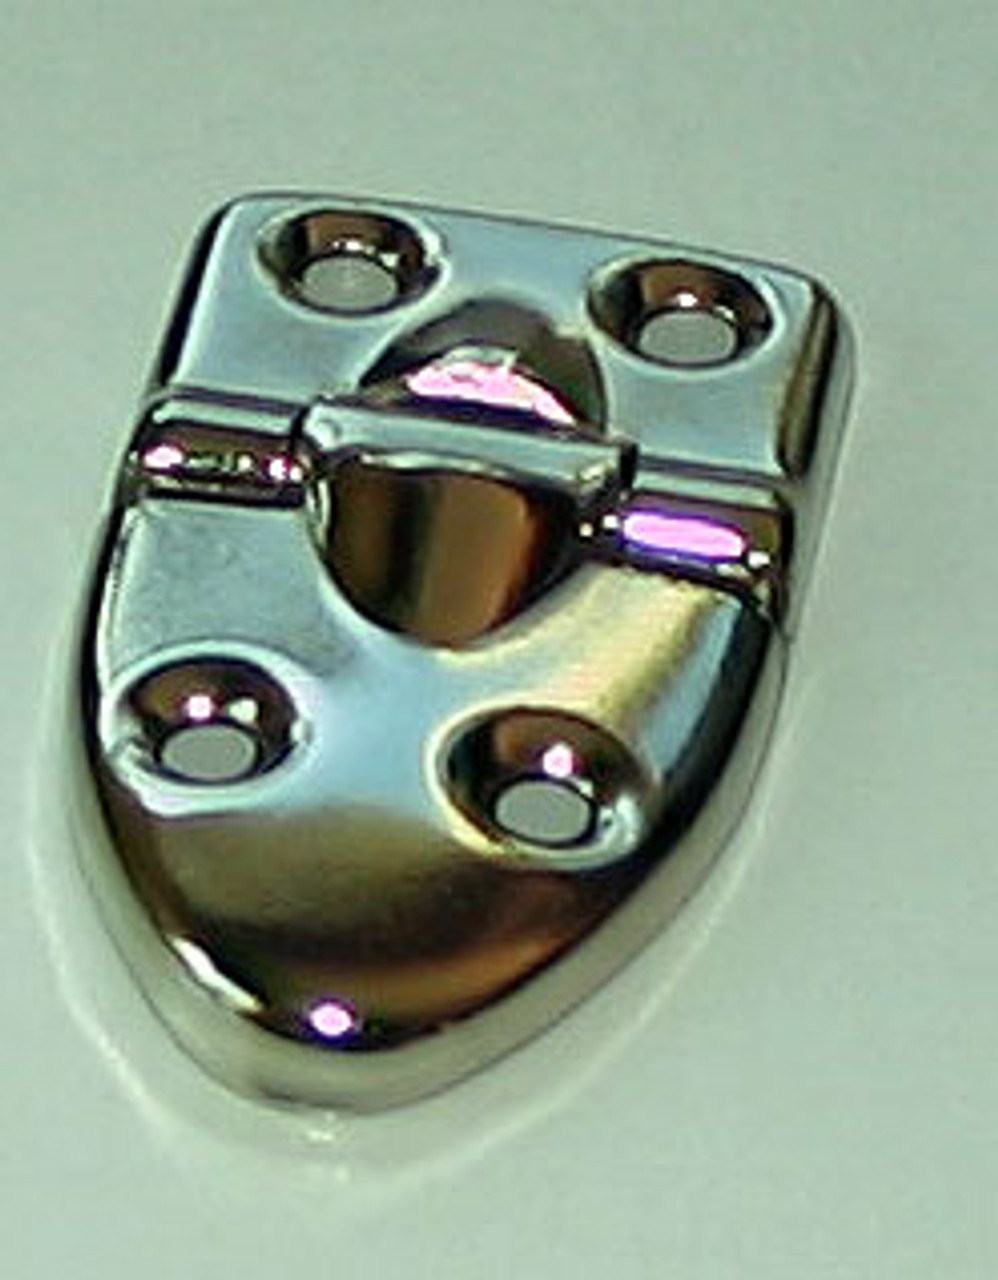 Tear Drop Hinge with stop nickel Plated